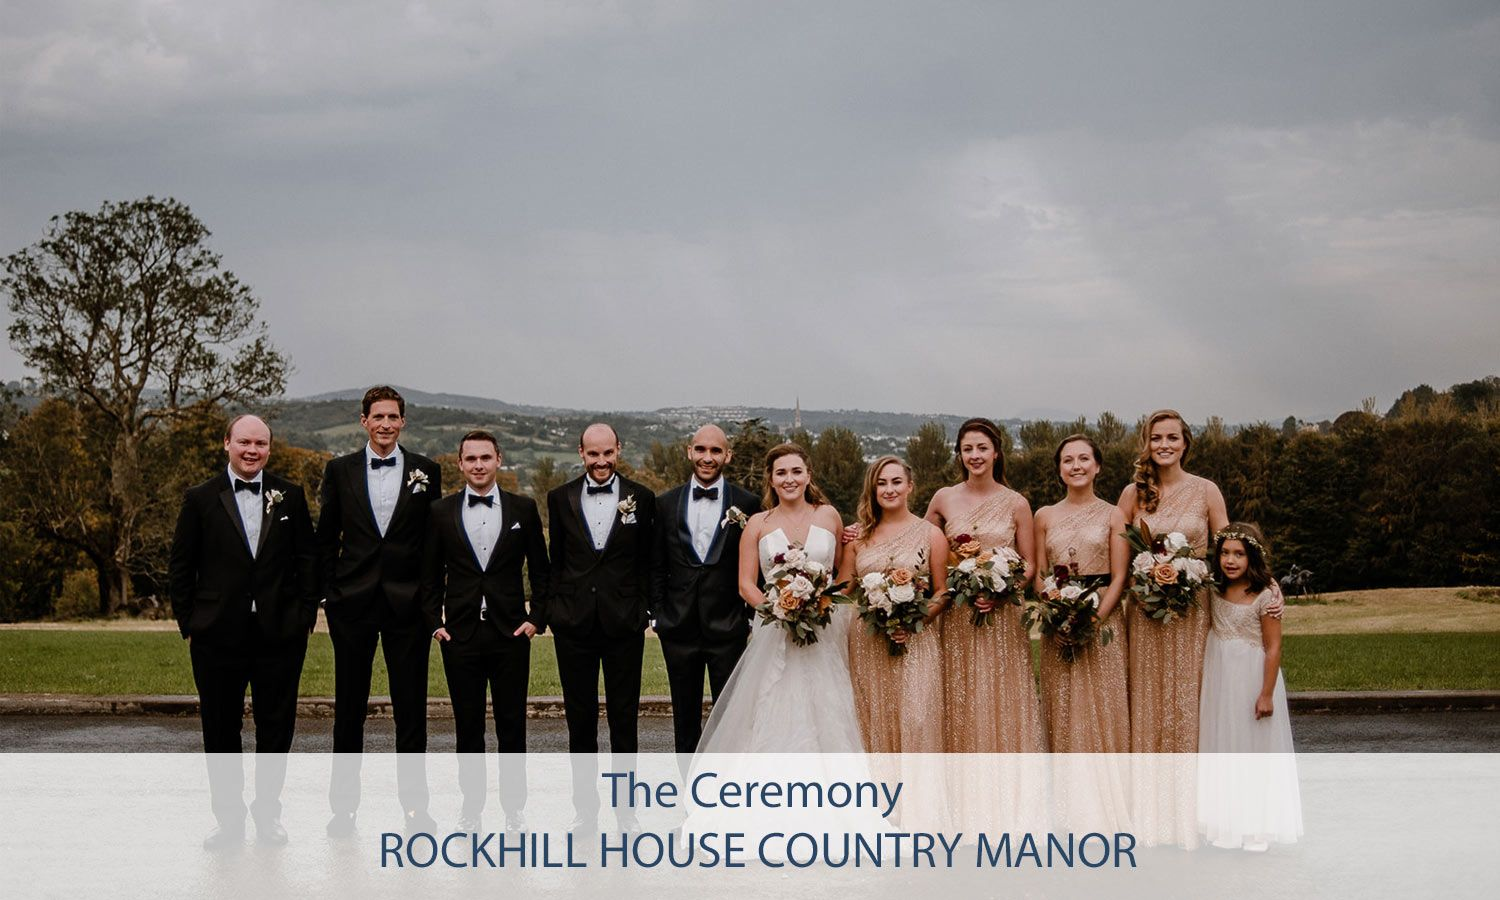 Rockhill-House-Ceremony